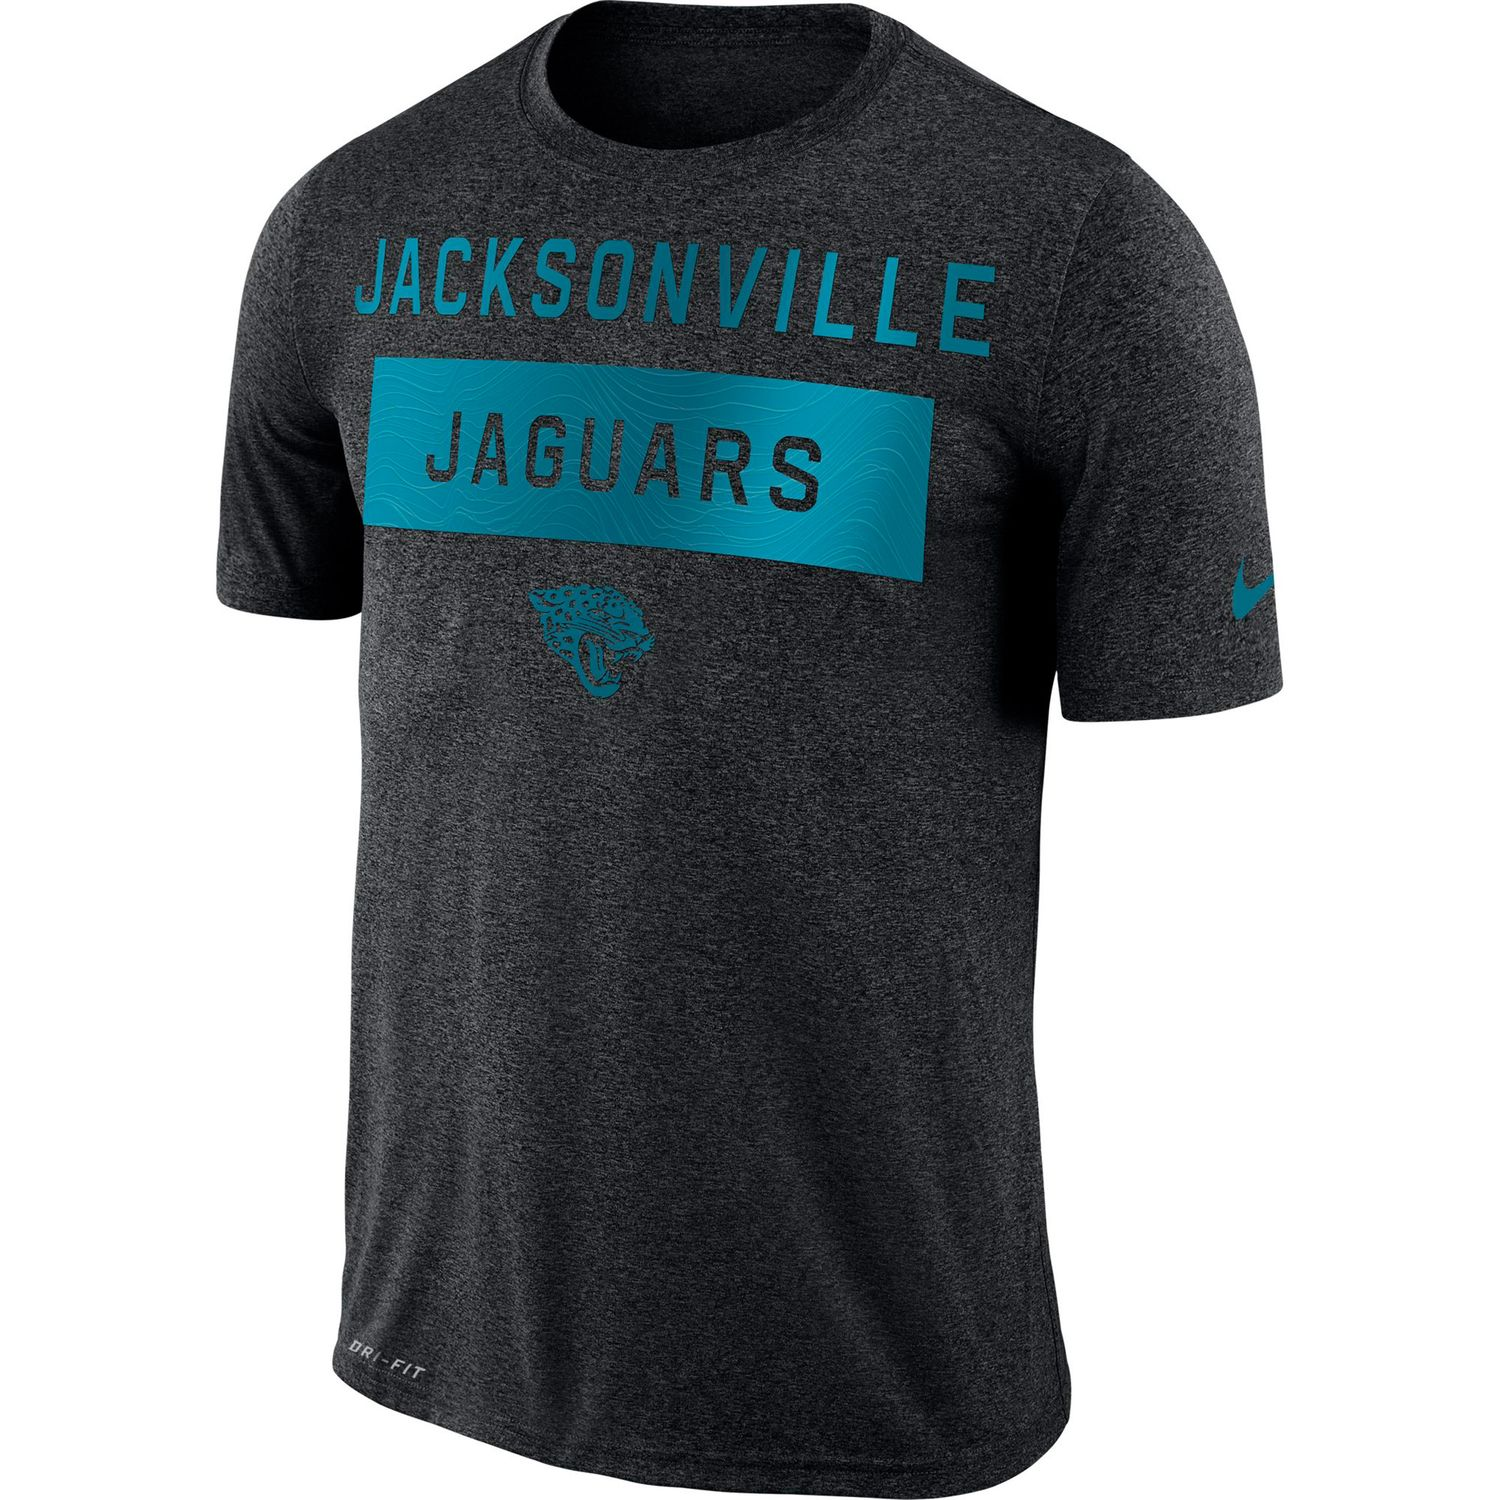 High Quality Menu0027s Nike Dri FIT Jacksonville Jaguars Tee